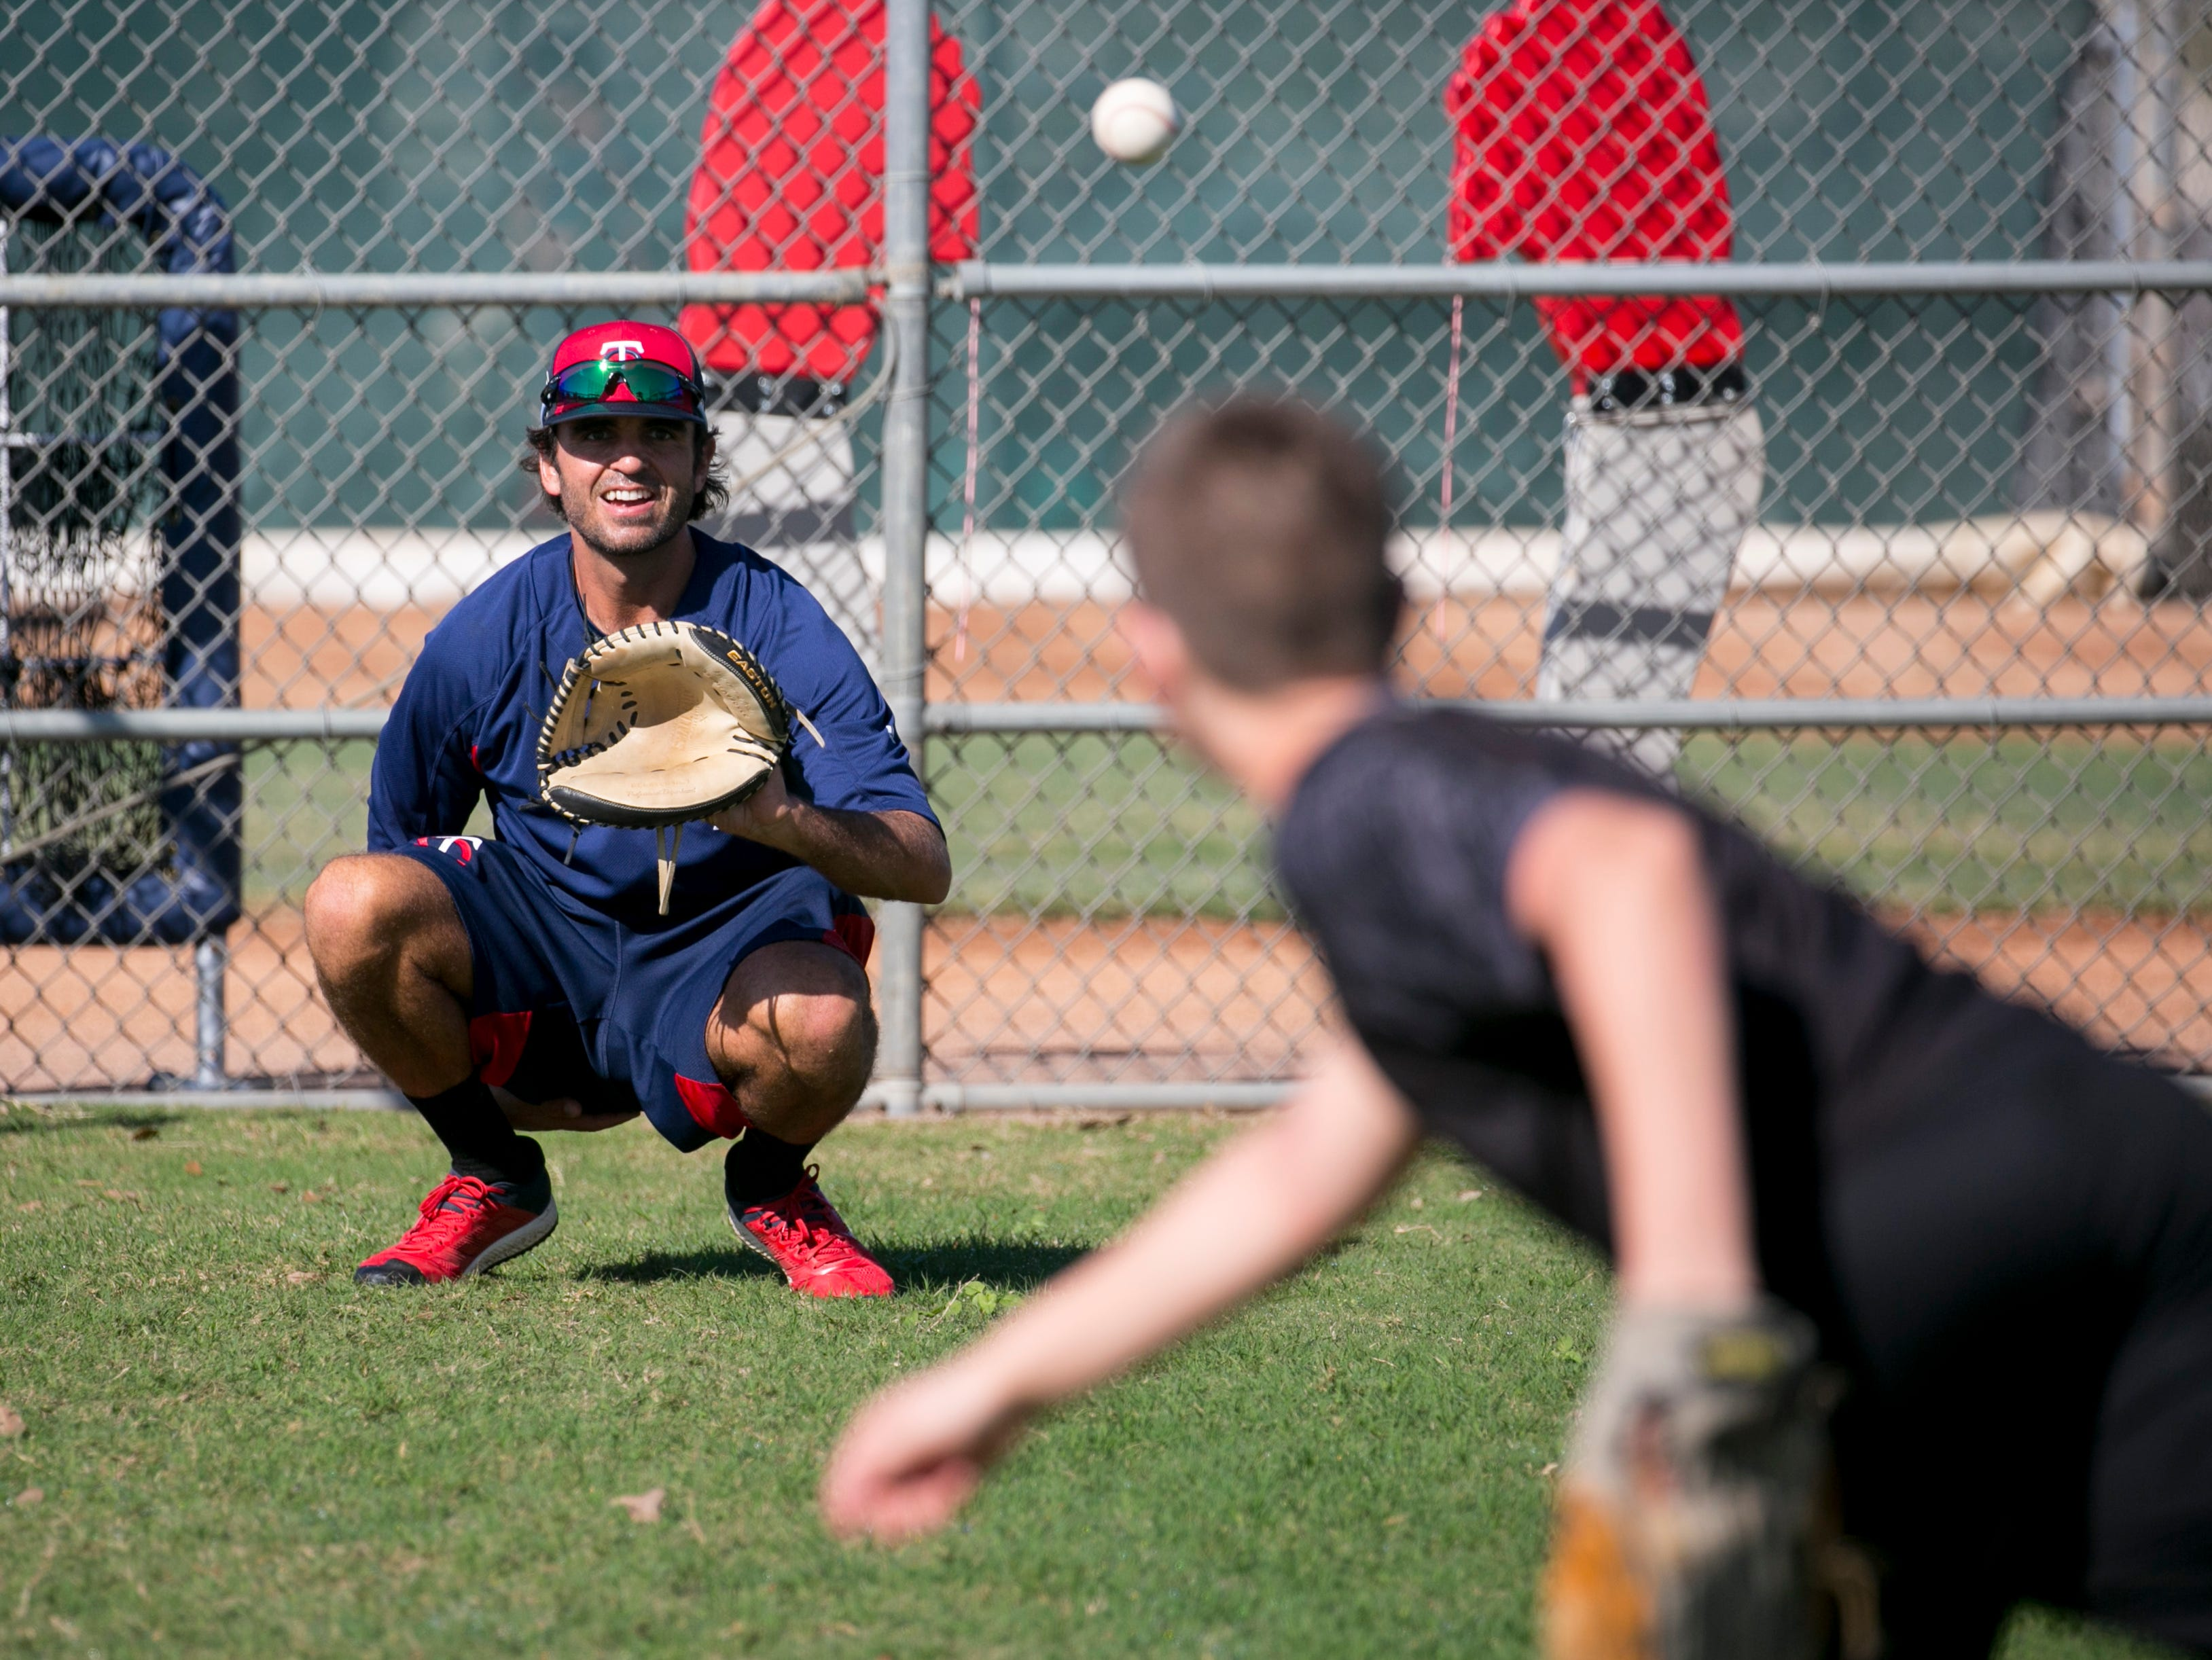 Virgil Vasquez, a pitching coach for the Minnesota Twins organization, catches a pitch from Thomas Slette, 12, of Hawley, Minn., on Friday morning, Feb. 8, 2019, at the Century Link Sports Complex in Fort Myers. The first official Spring Training practice for pitchers and catchers is on Wednesday.